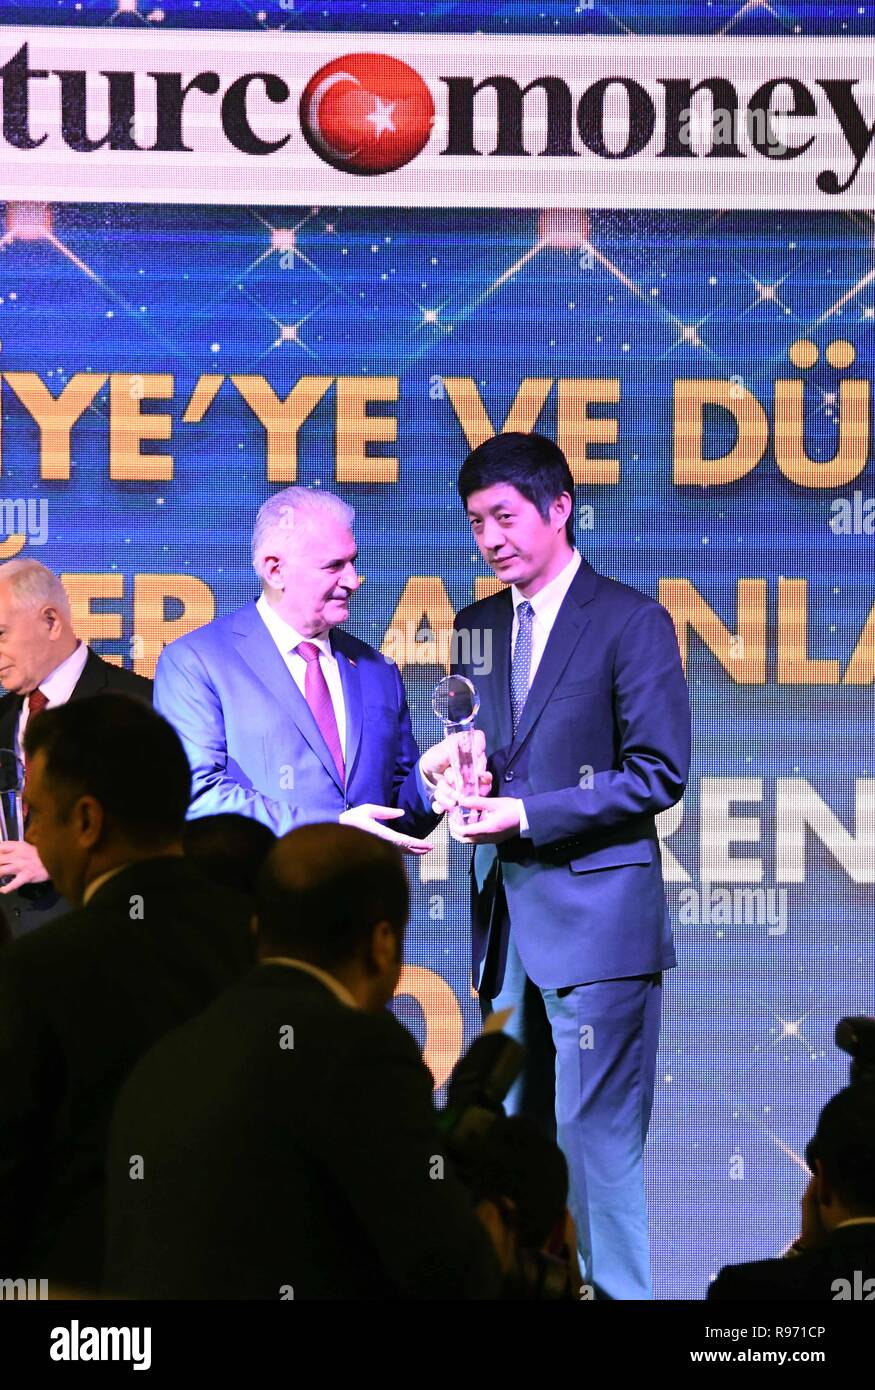 Istanbul, Turkey. 20th Dec, 2018. Binali Yildirim (L), speaker of the Grand National Assembly of Turkey, grants the award of 'International Bank of the Year' to Gao Xiangyang, chairman of ICBC Turkey, at an awarding ceremony in Istanbul, Turkey, Dec. 20, 2018. ICBC Turkey, a branch of the Industrial and Commercial Bank of China (ICBC), on Thursday was named the 'International Bank of the Year' for its 'distinguished contributions' to Turkey's economy. Credit: Xu Suhui/Xinhua/Alamy Live News - Stock Image